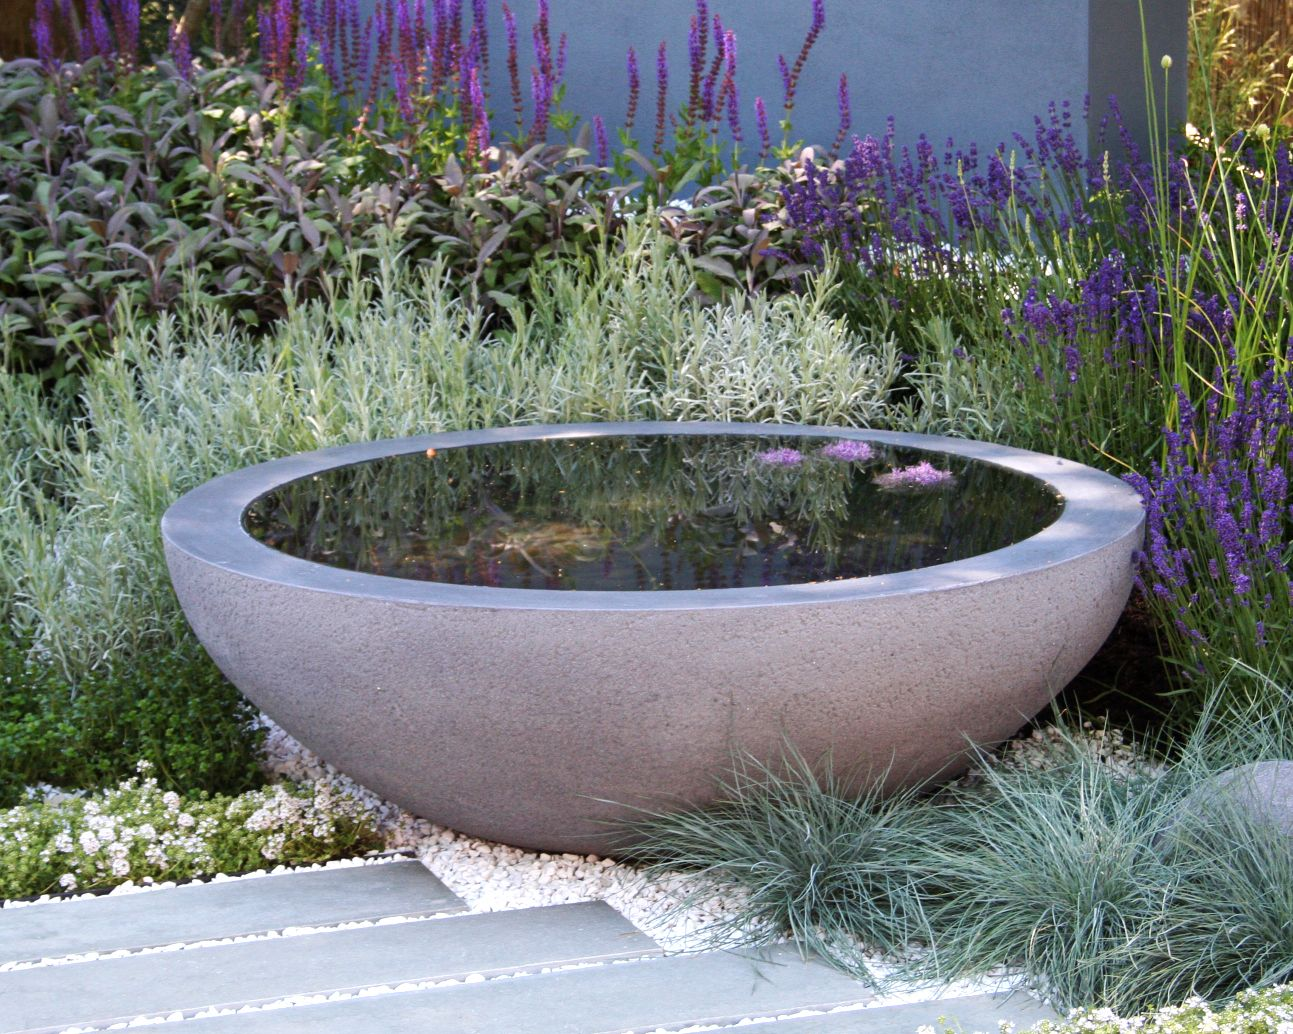 Water Feature Pond Bowl From Urbis With Dry Gravel Planting By Rae  Wilkinson, Garden Built